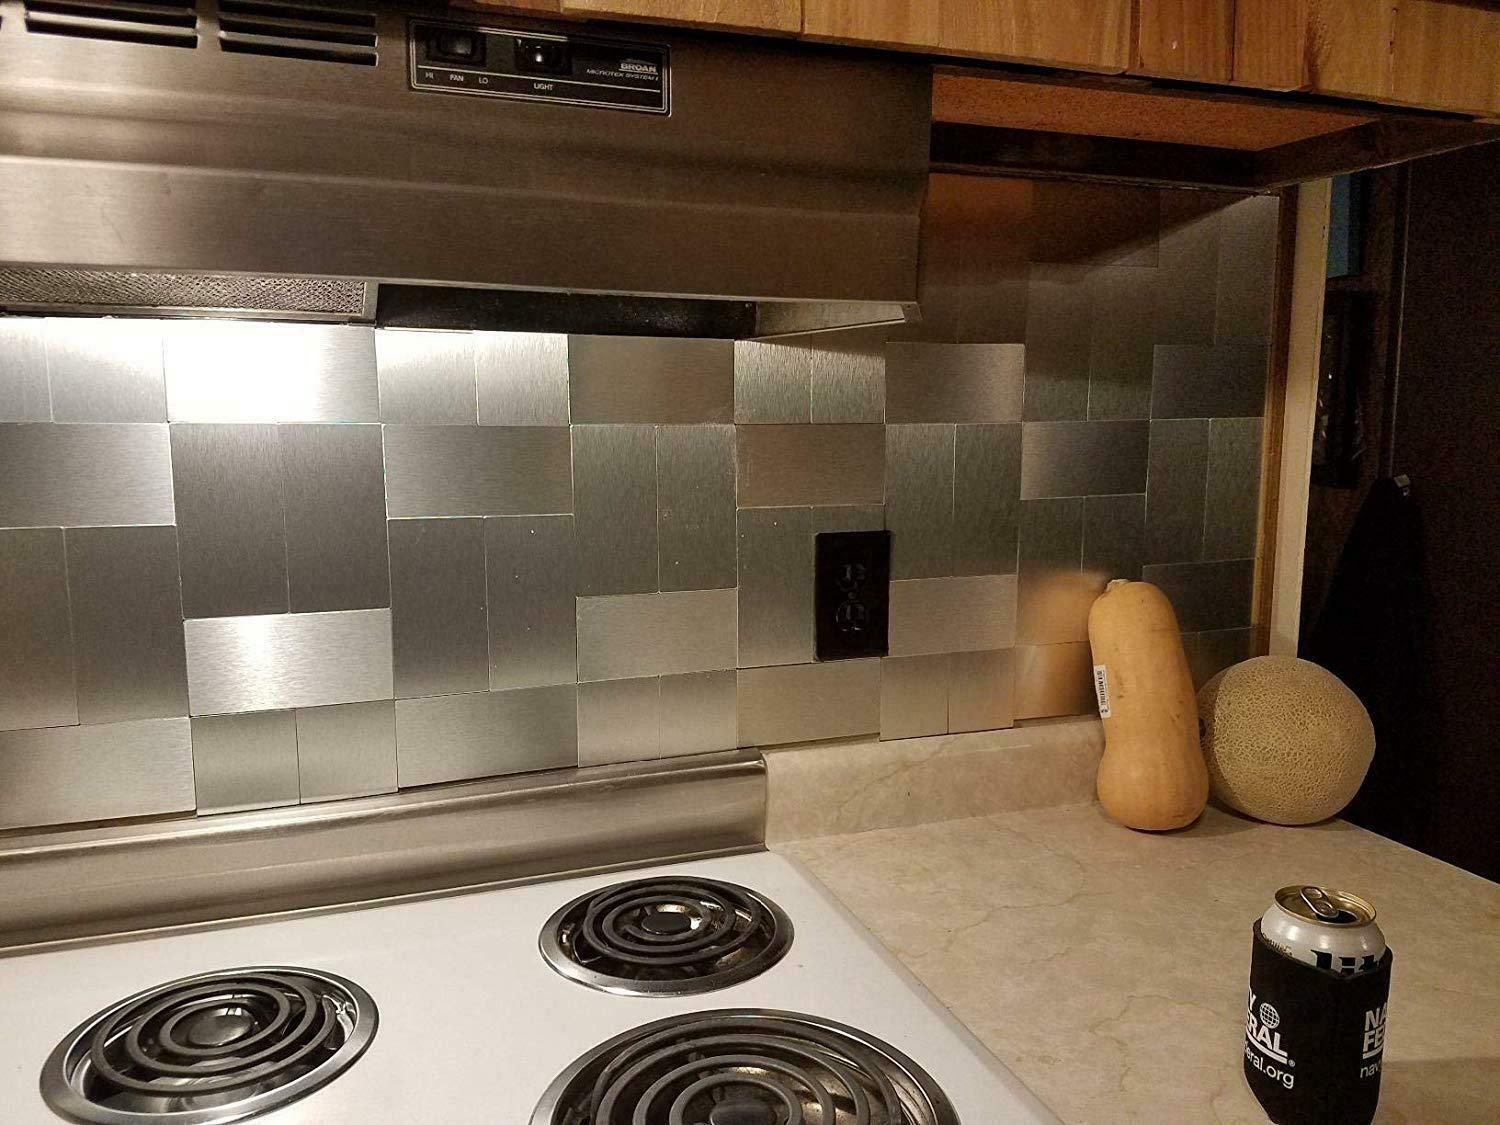 Art3d 32 Piece Peel And Stick Stainless Steel Backsplash Tiles 3